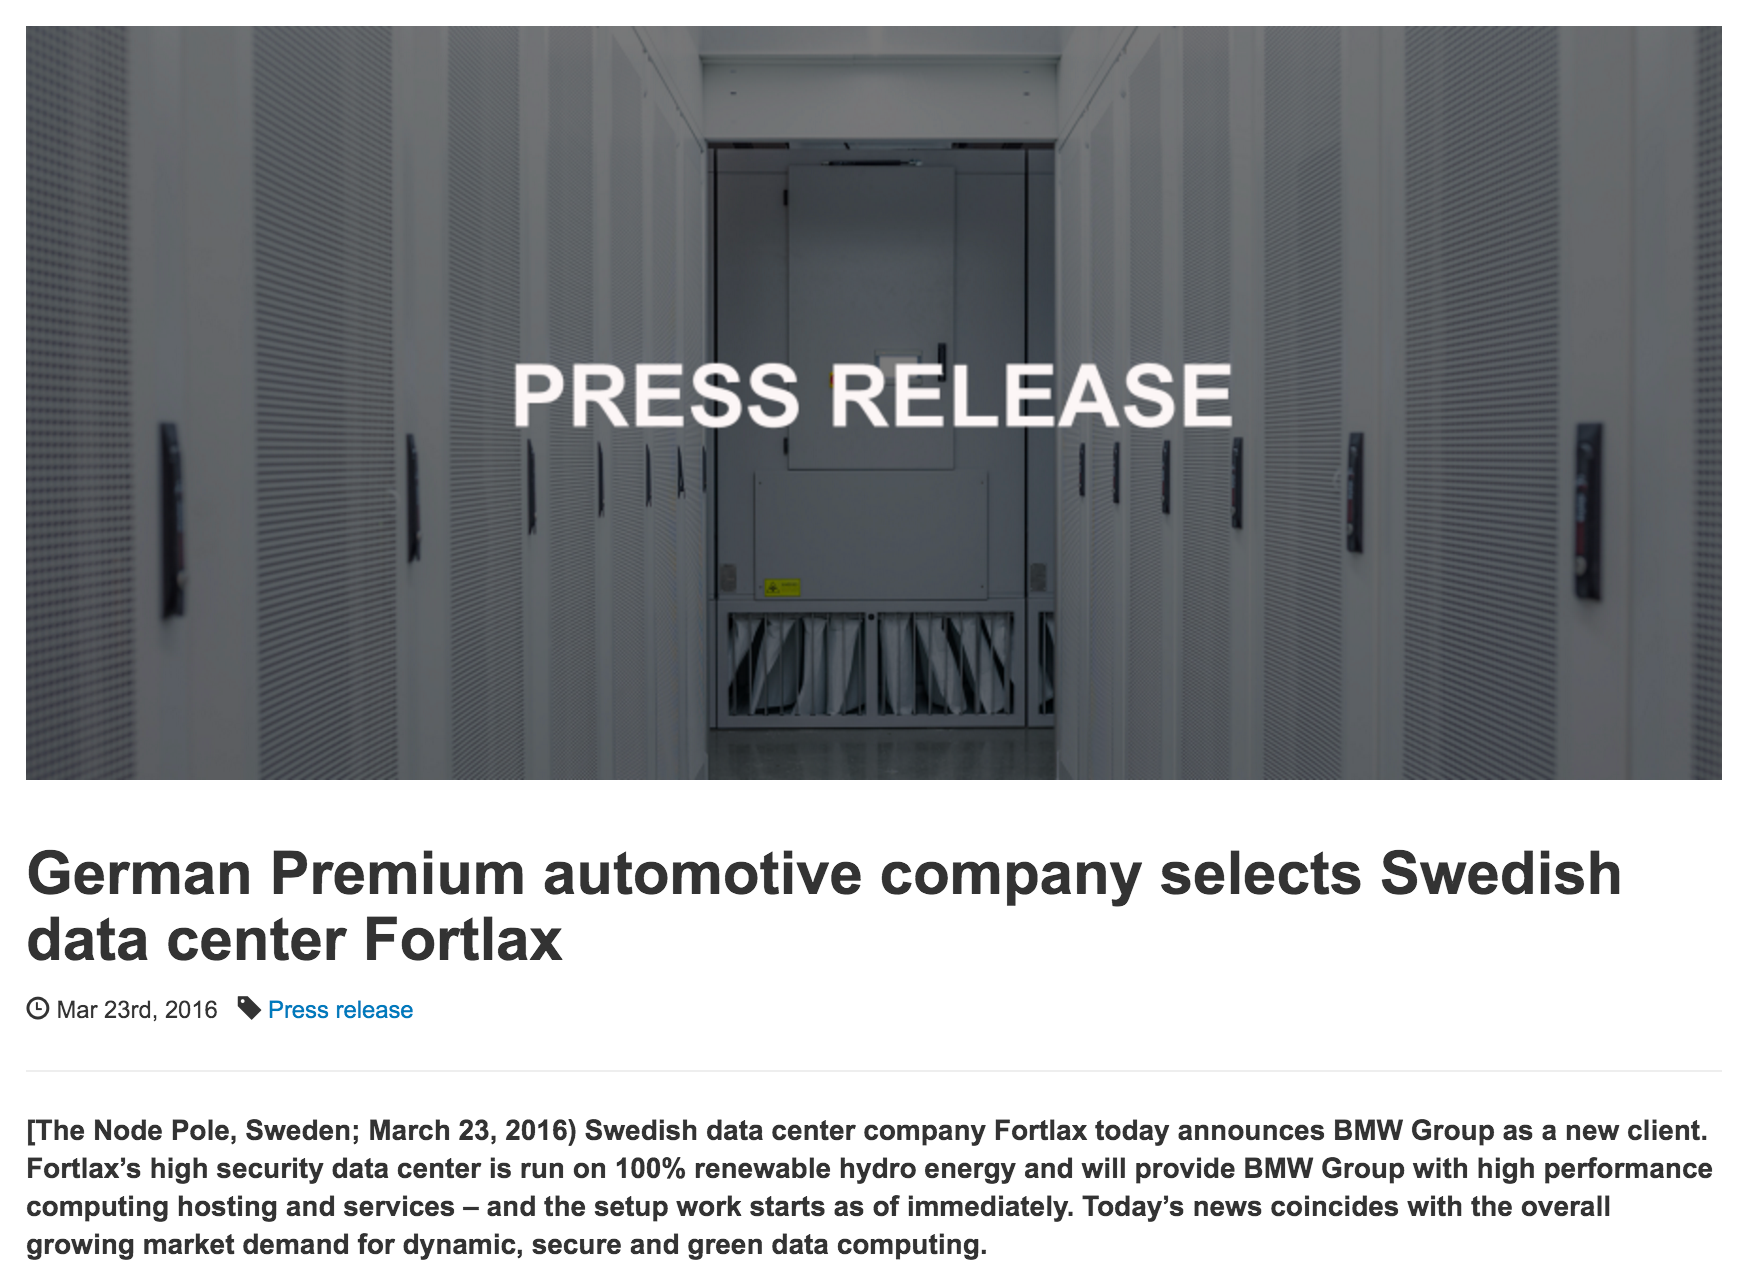 German_Premium_automotive_company_selects_Swedish_data_center_Fortlax_–_The_Node_Pole